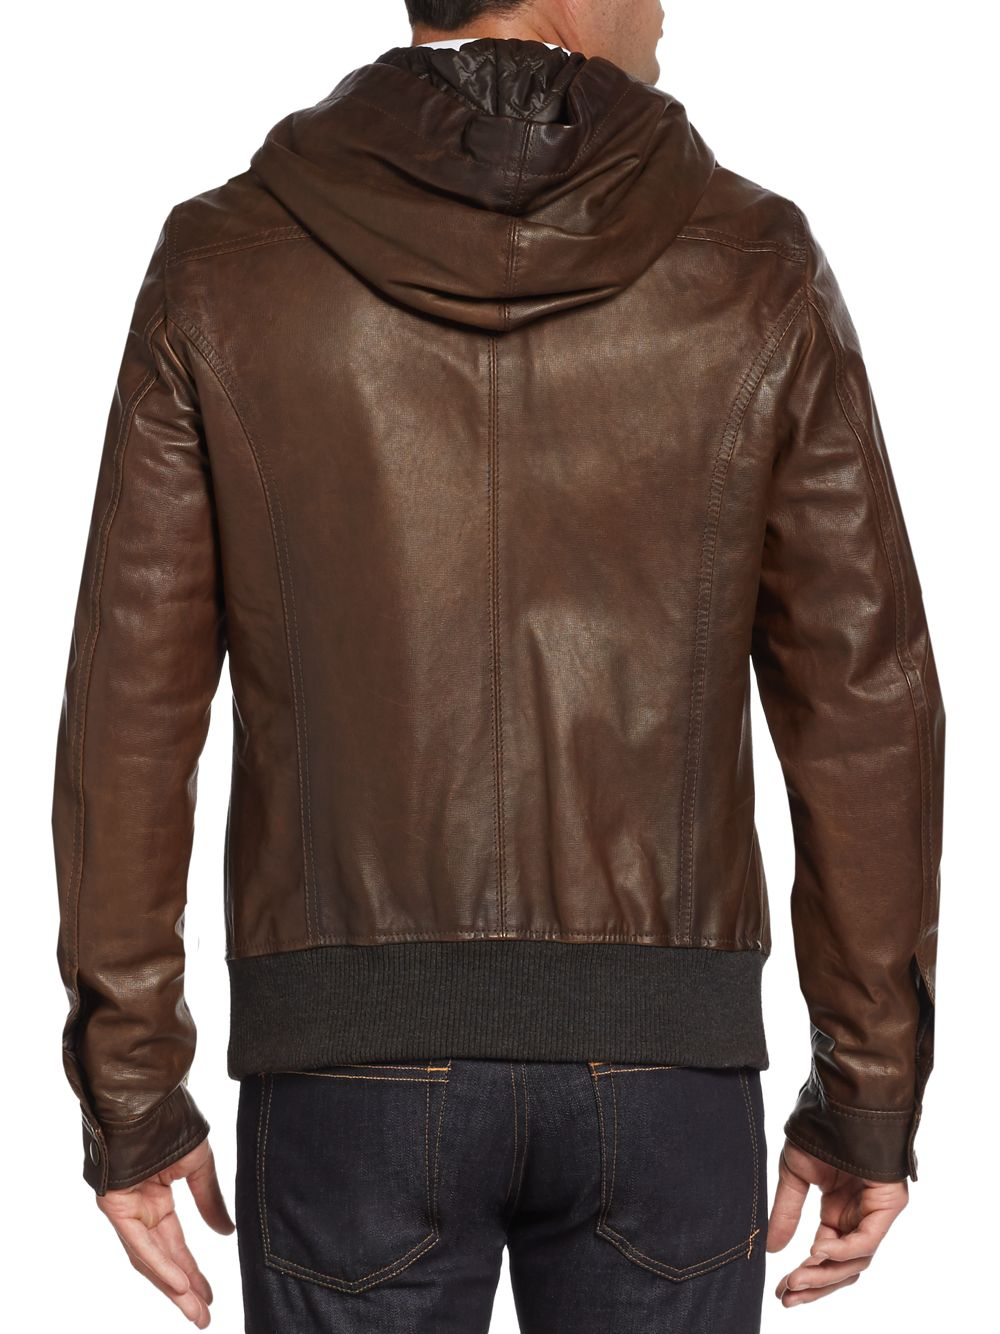 Dolce & gabbana Hooded Leather Bomber Jacket in Brown for Men | Lyst